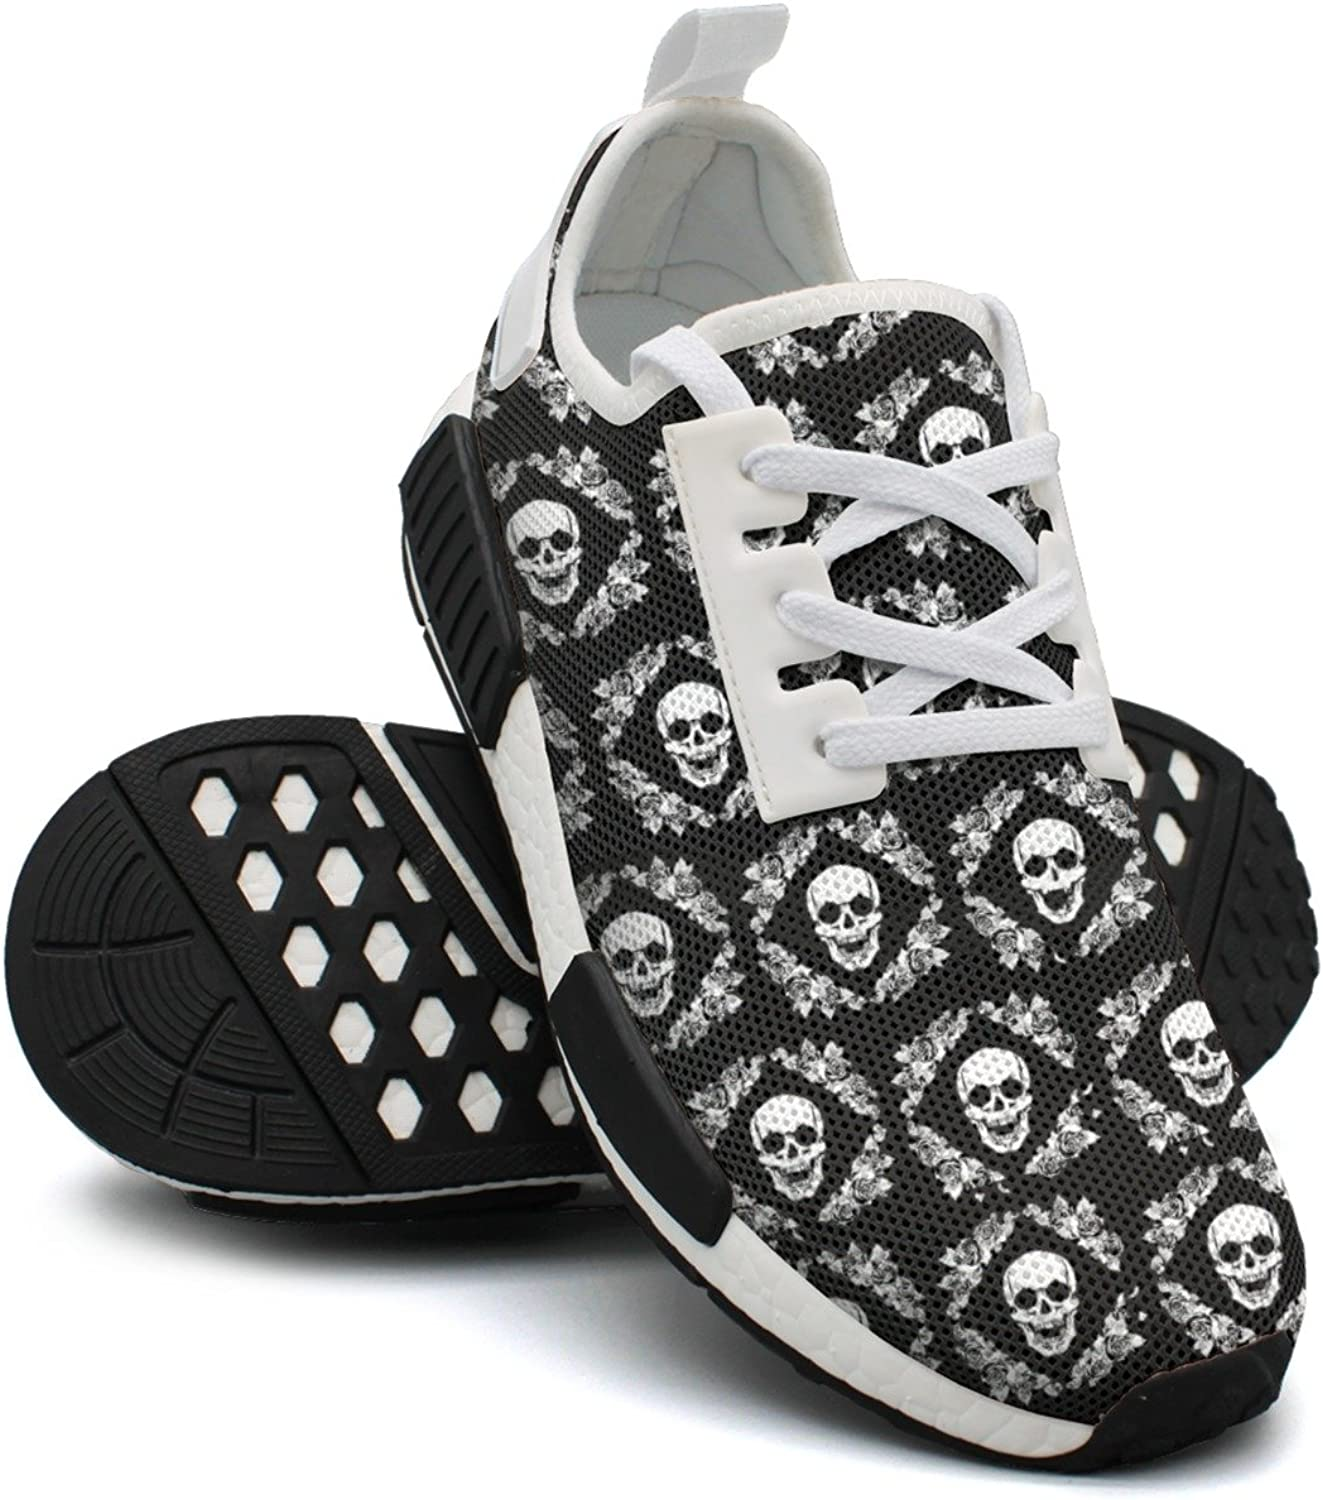 Skull in pinks Women's Unique Lightweight Sneakers shoes Gym Outdoor Walking shoes